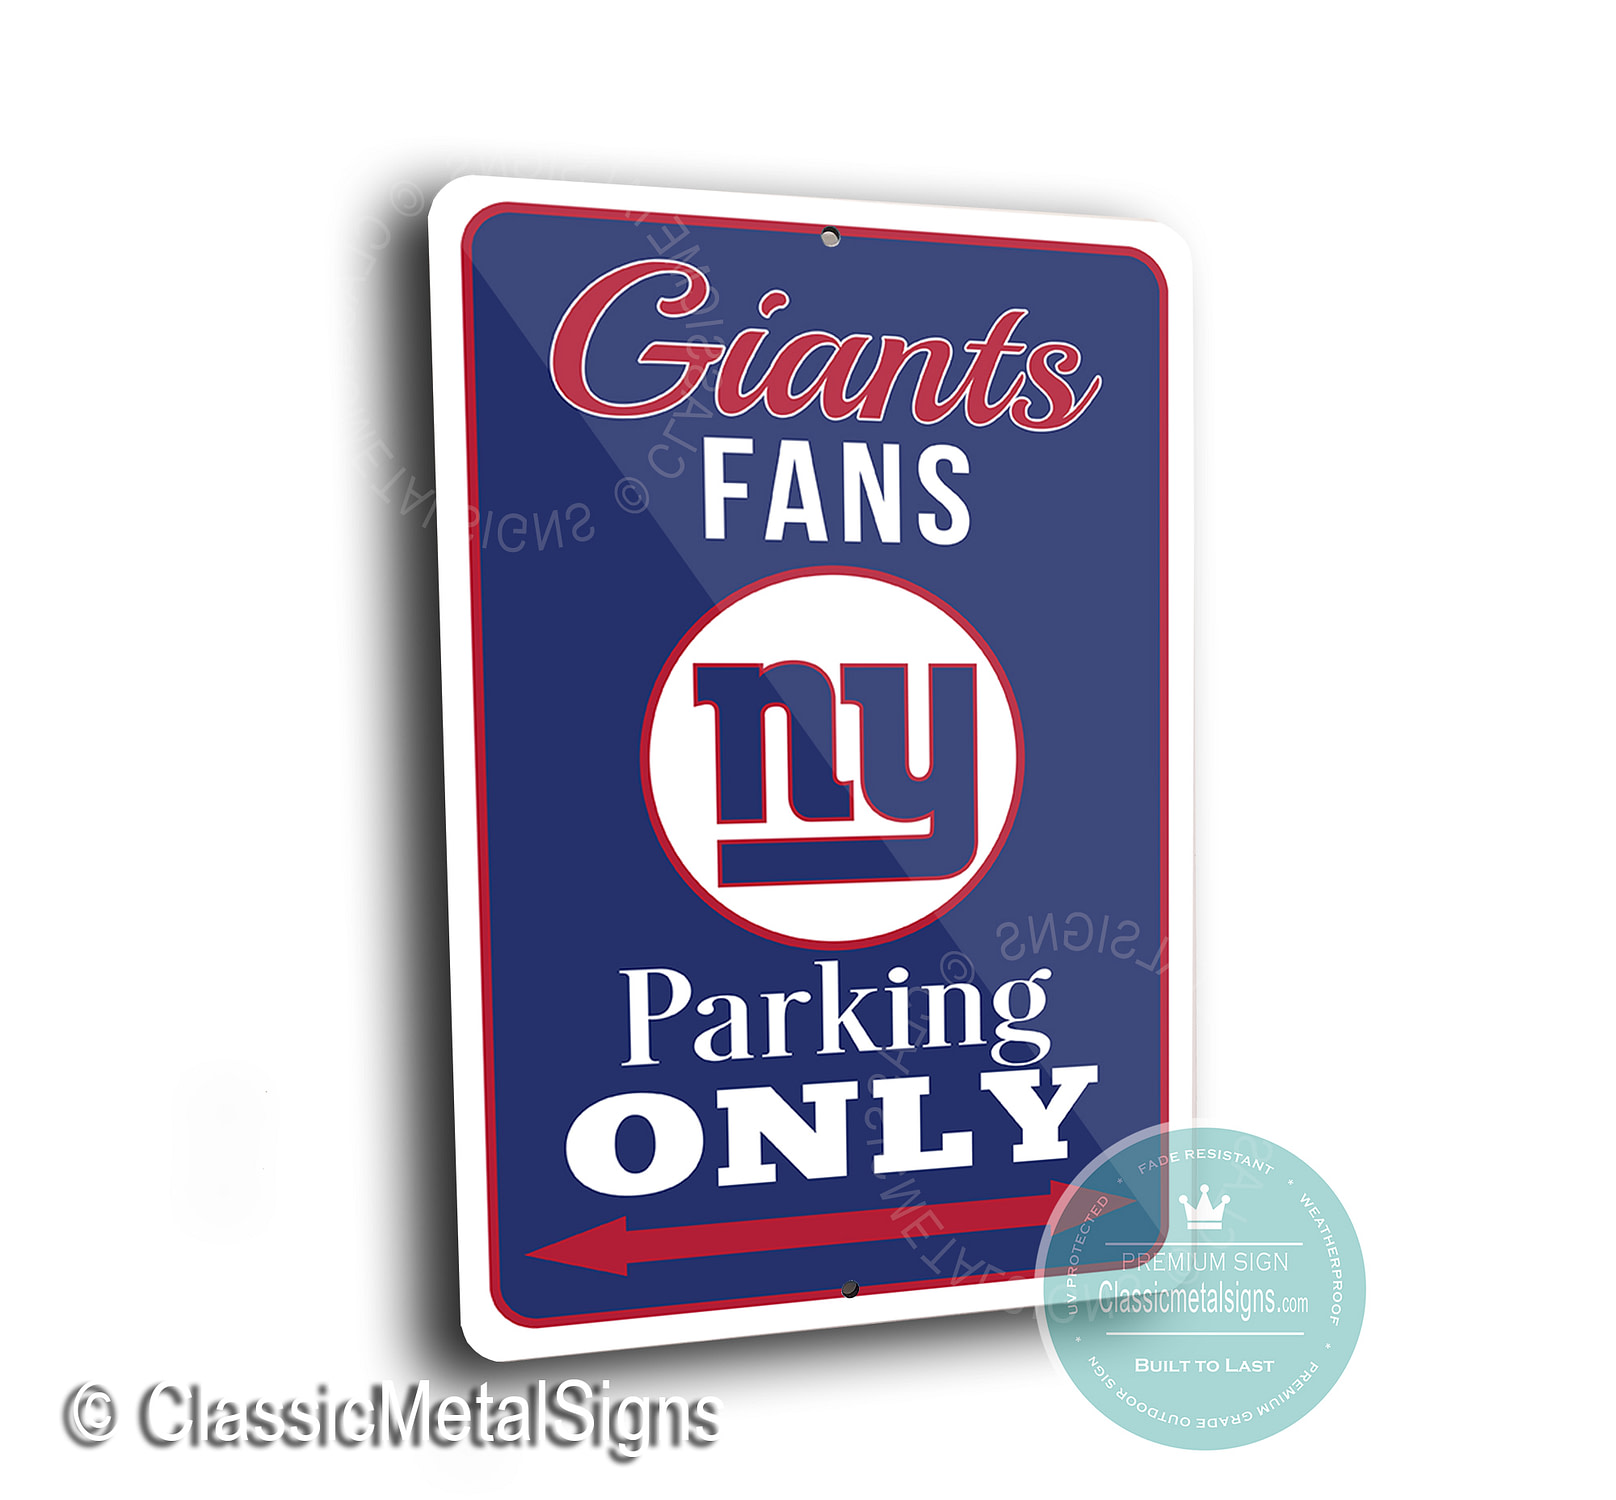 New York Giants Parking Signs